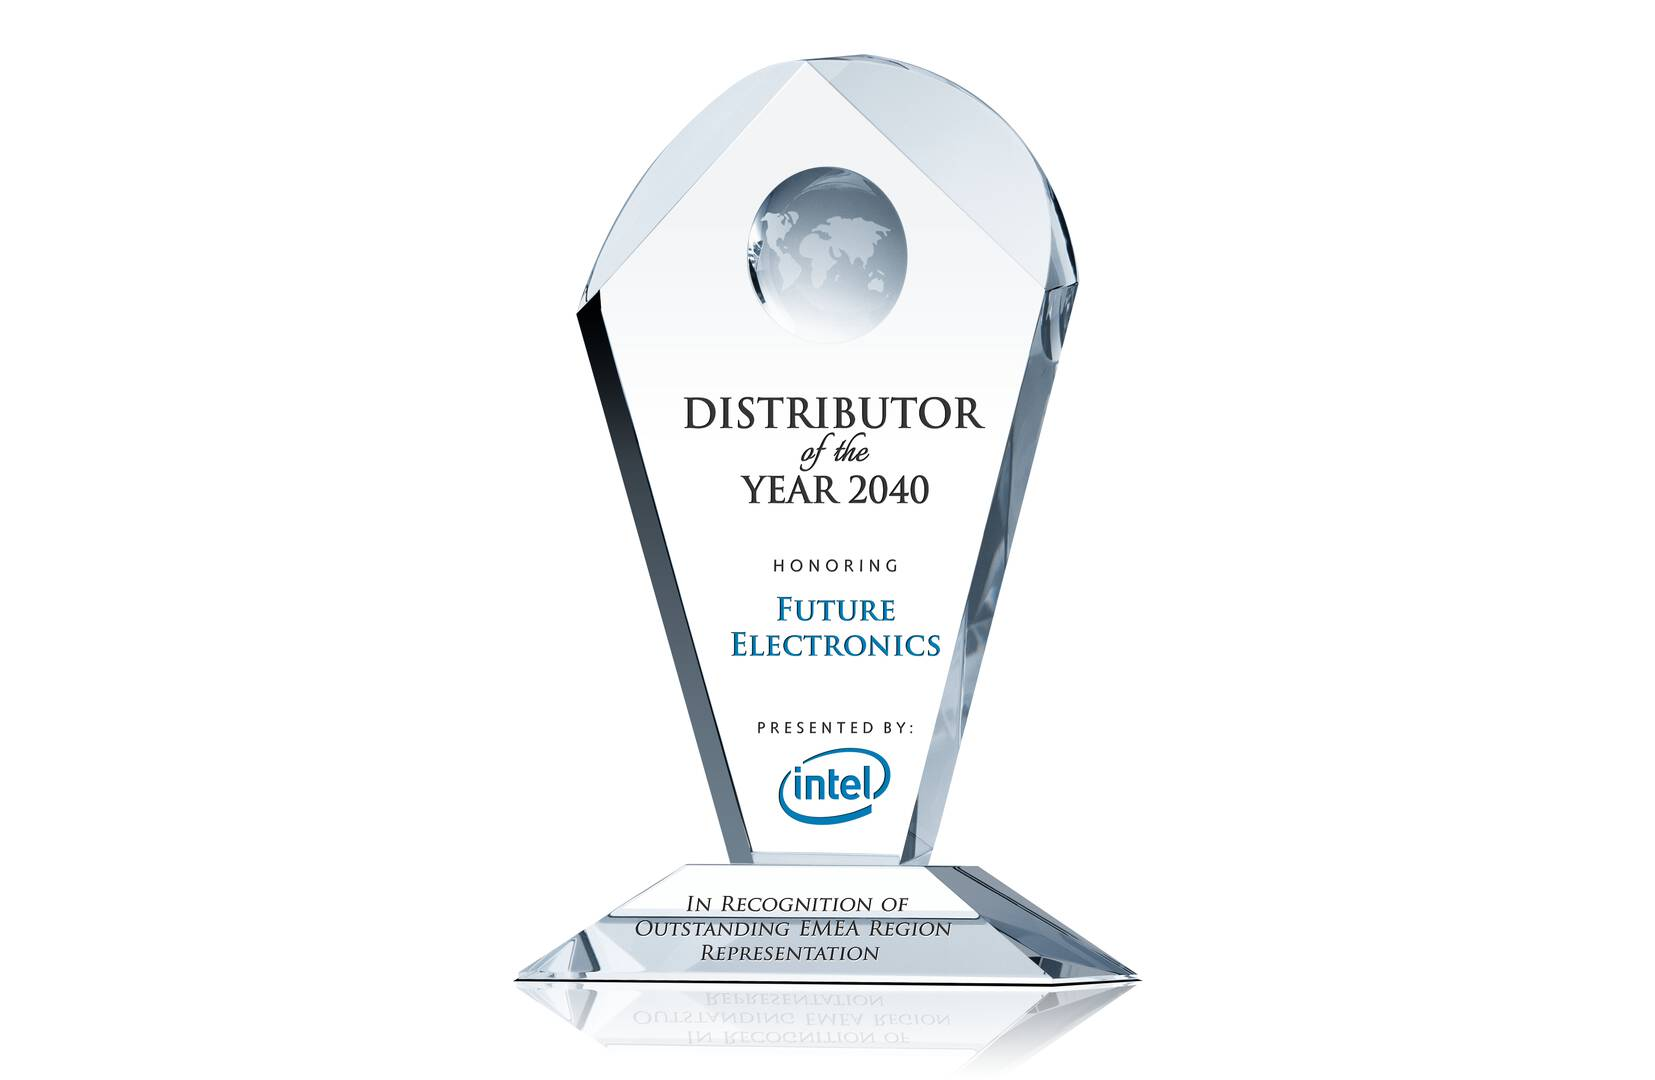 Geodesic Distributor Supplier Awards